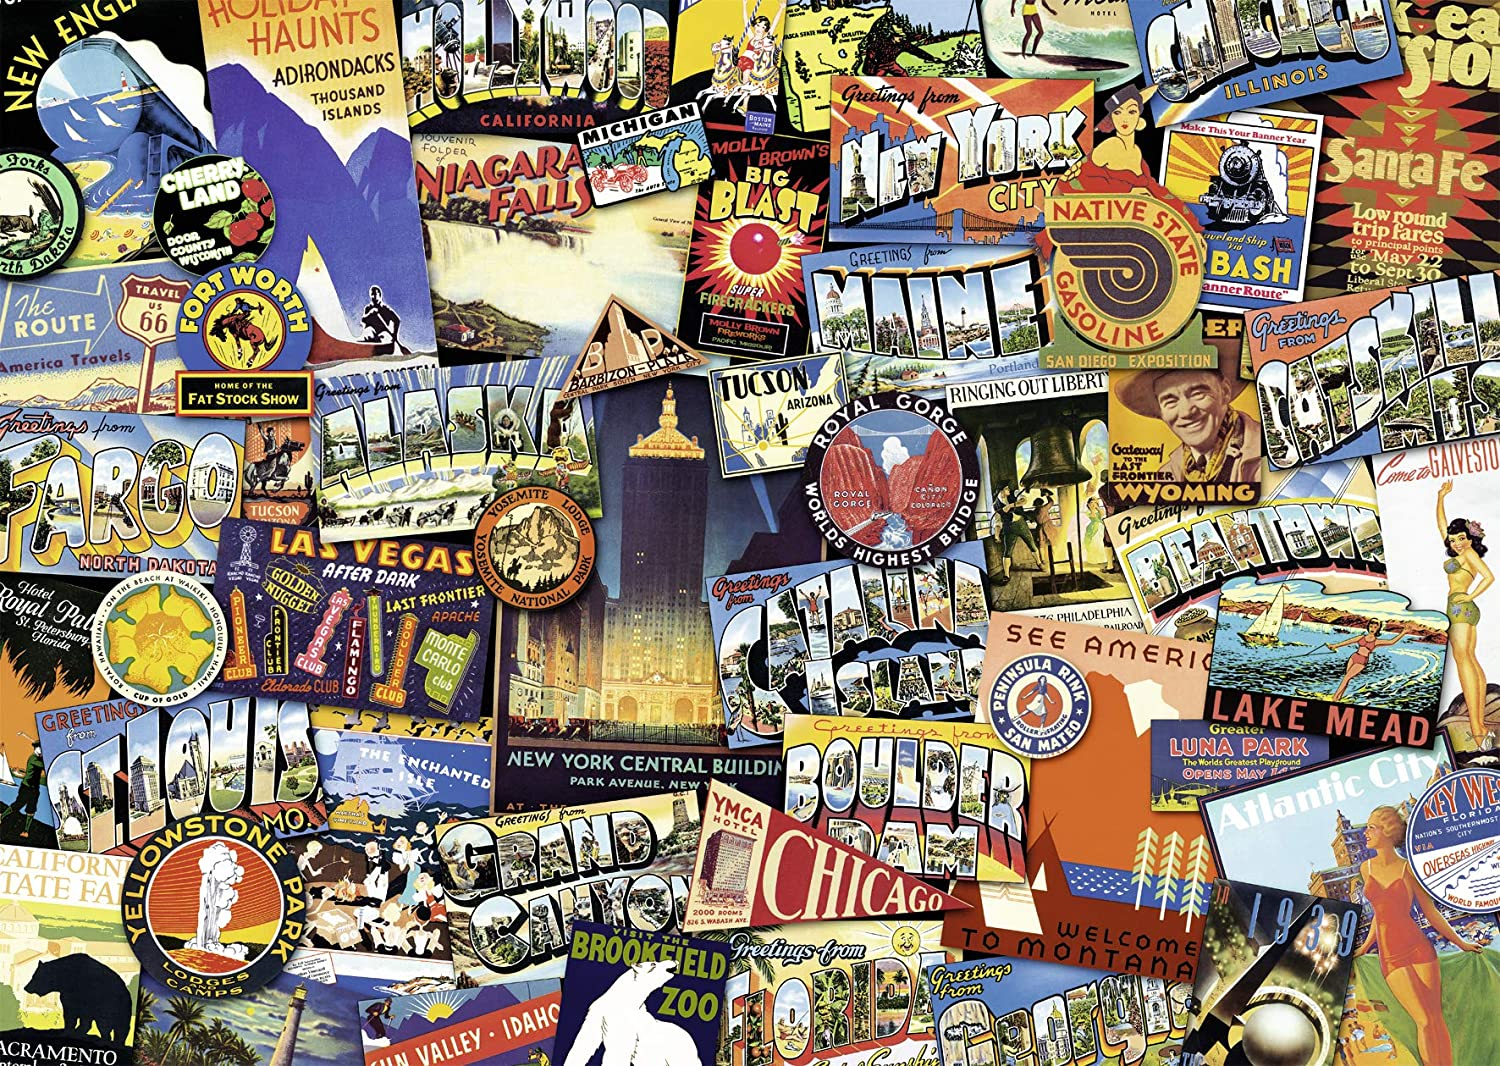 Ravensburger Road Trip USA 1000 Piece Jigsaw Puzzle for Adults – Every Piece is Unique, Softclick Technology Means Pieces Fit Together Perfectly